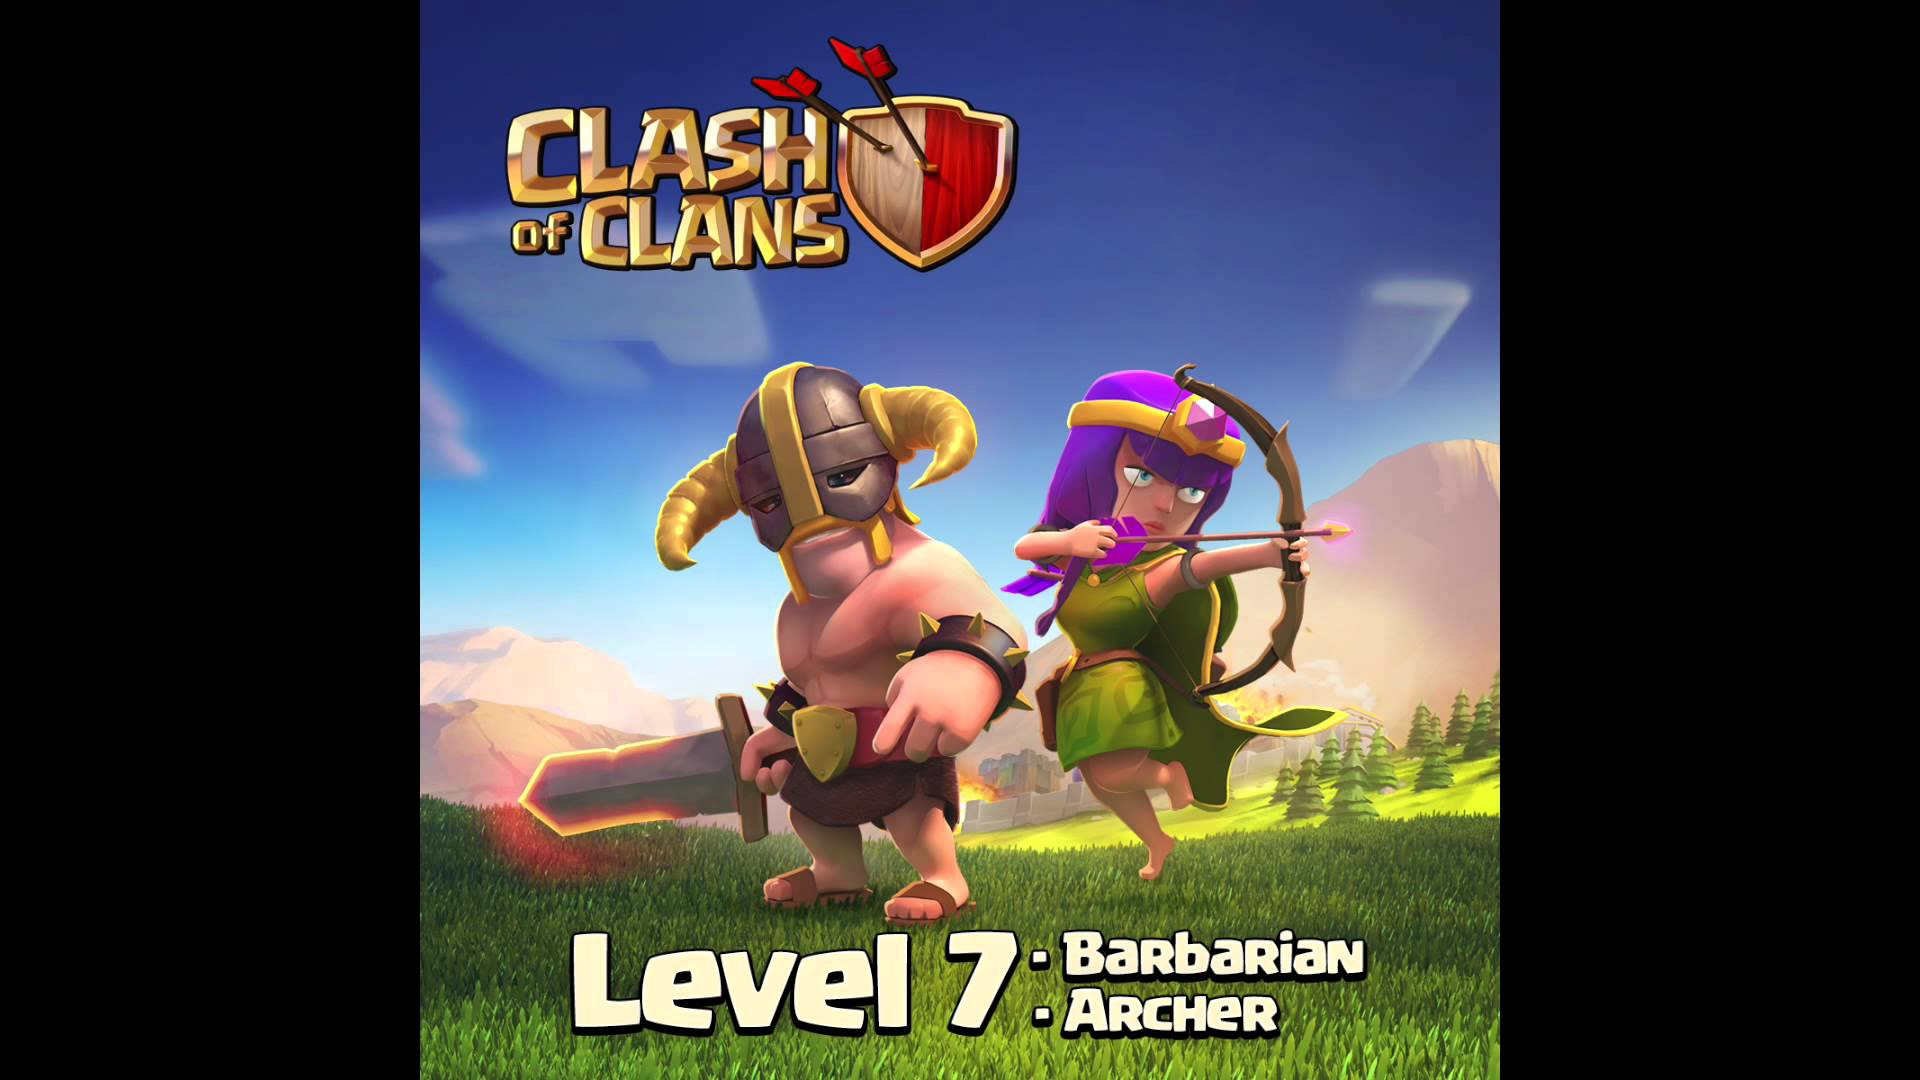 Clash of Clans Barbarian Level 7